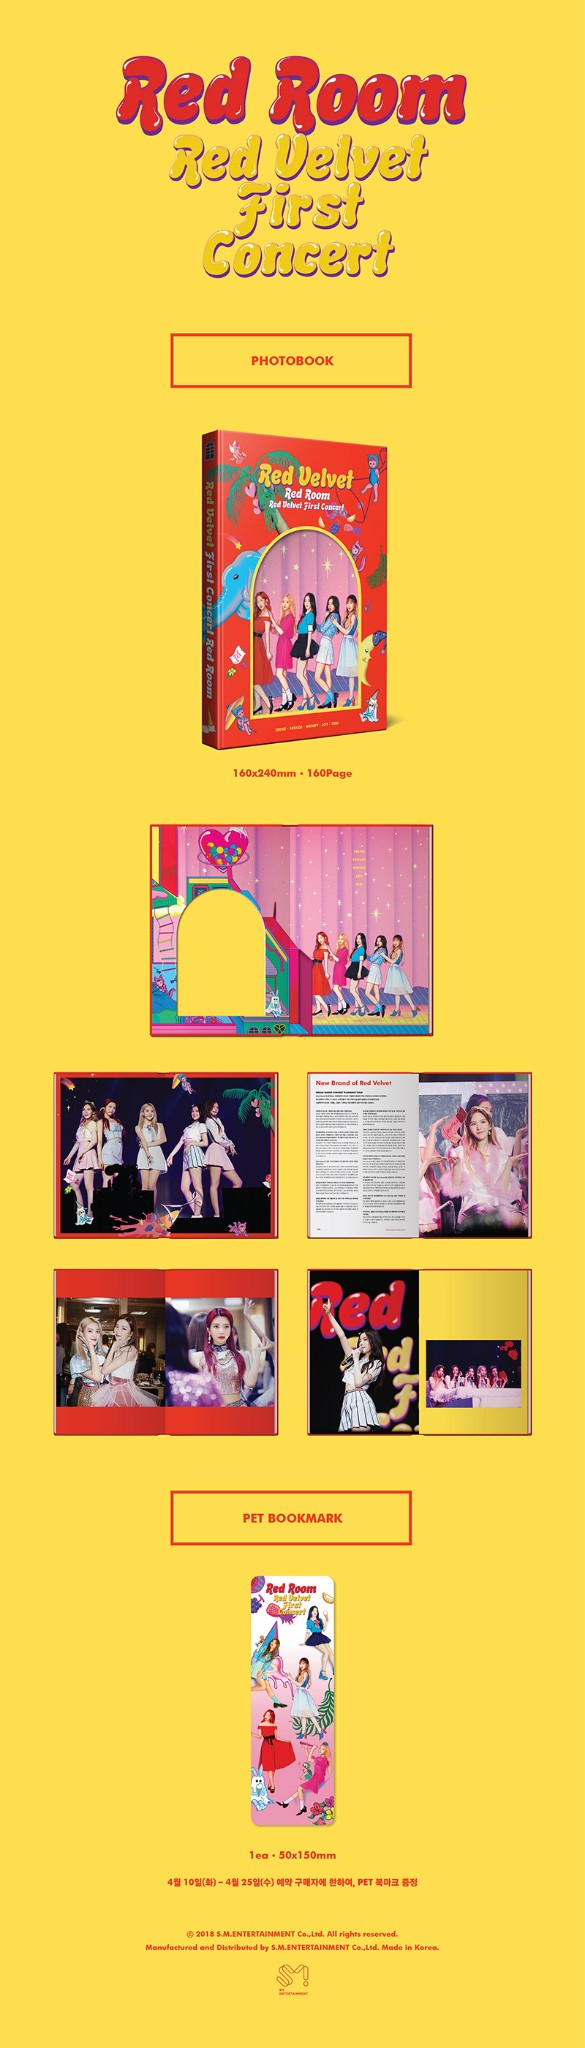 Details about RED VELVET First Concert Red Room Snap Photo book  Book+Bookmark KPOP